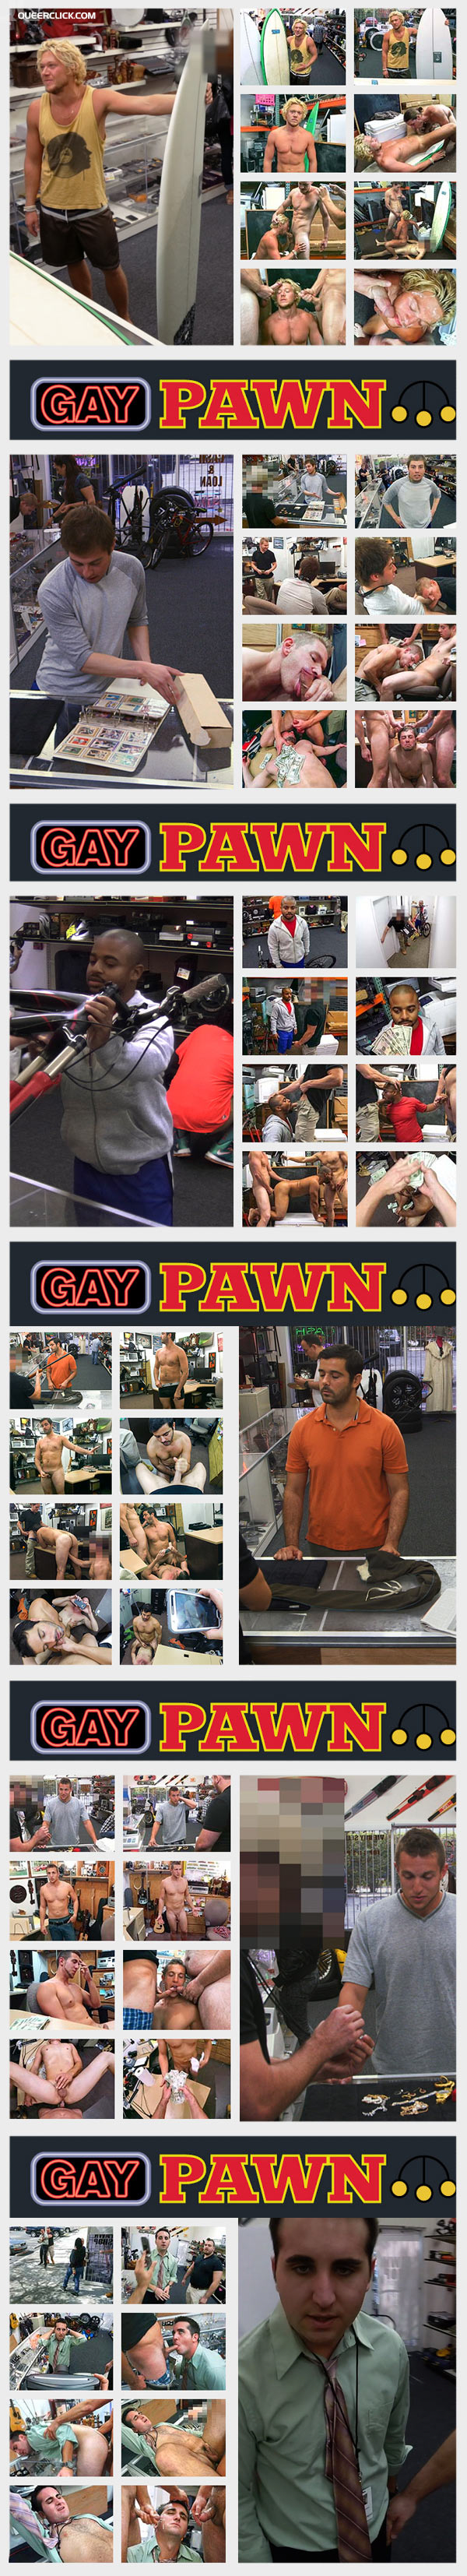 gaypawn gay s